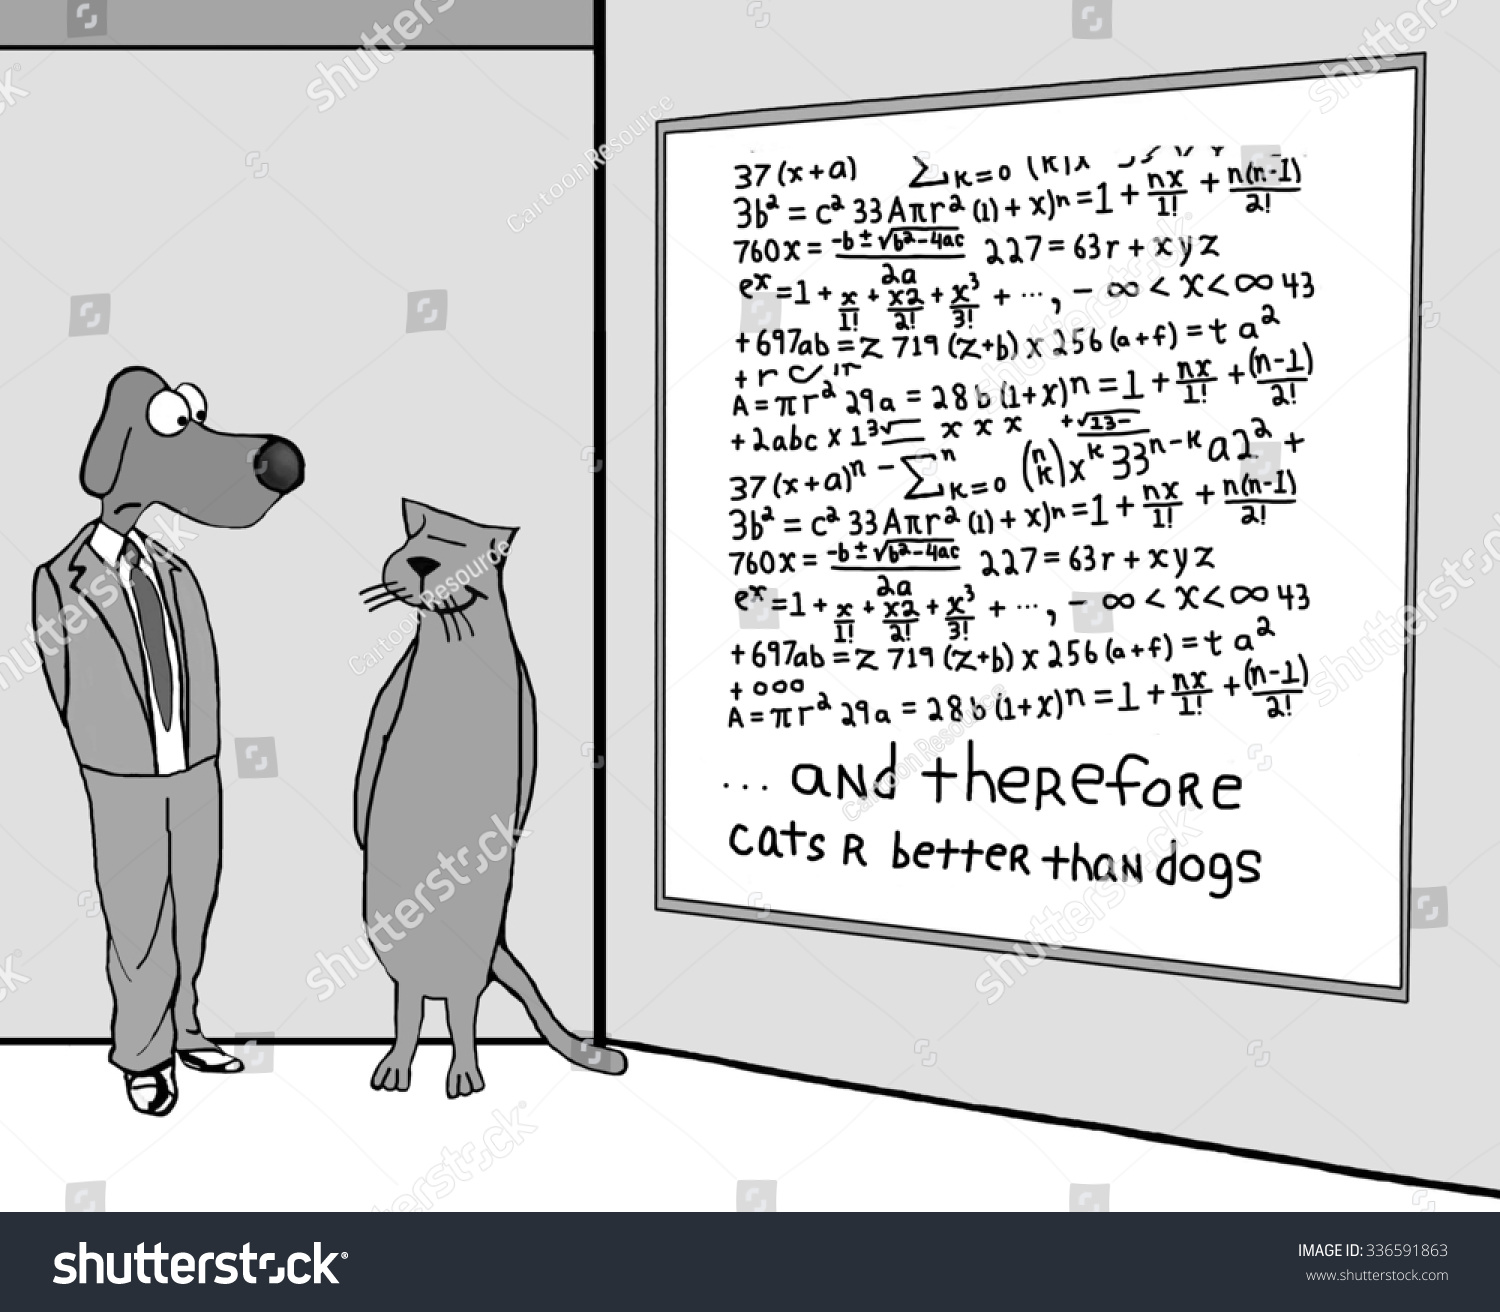 Animal Education And Business Cartoon Of A Dog Cat And Whiteboard Filled With Complex